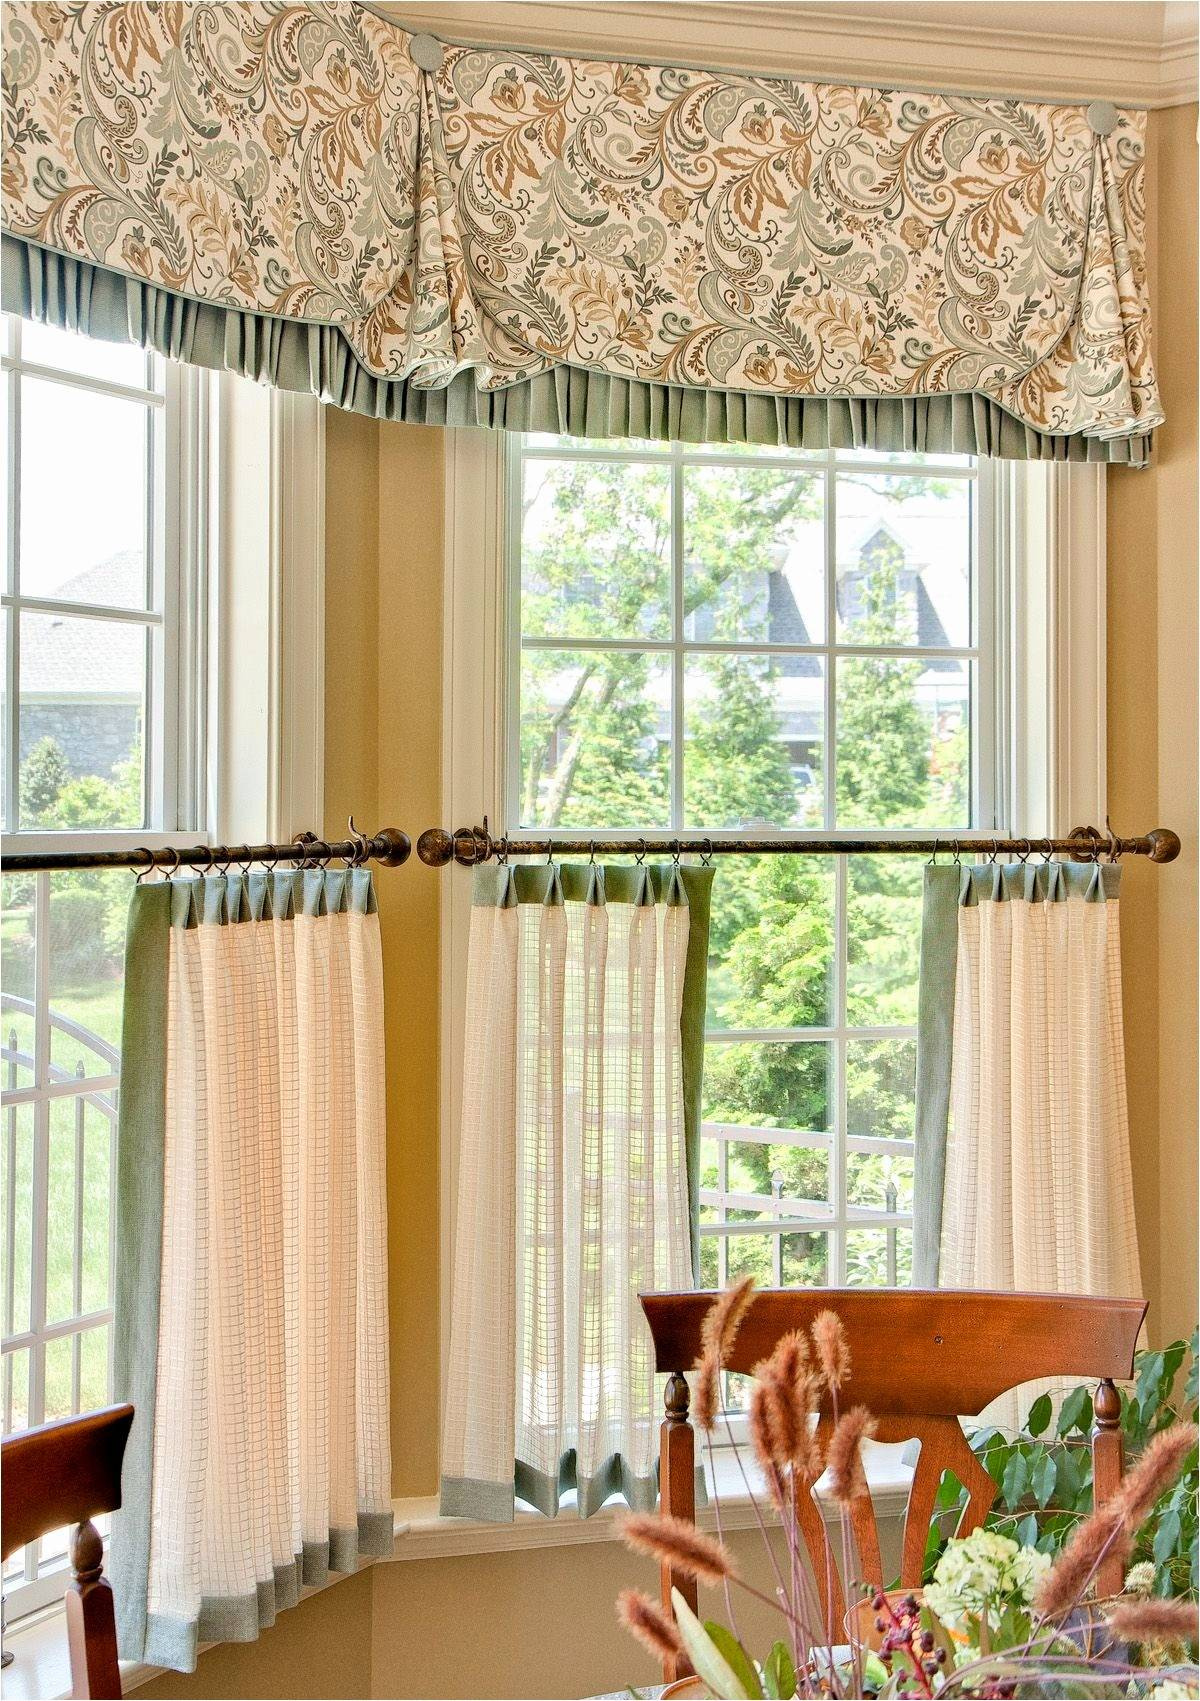 kitchen windows ideas unique window designs ideas fresh unique bathroom windowsill 0d collection of kitchen windows ideas